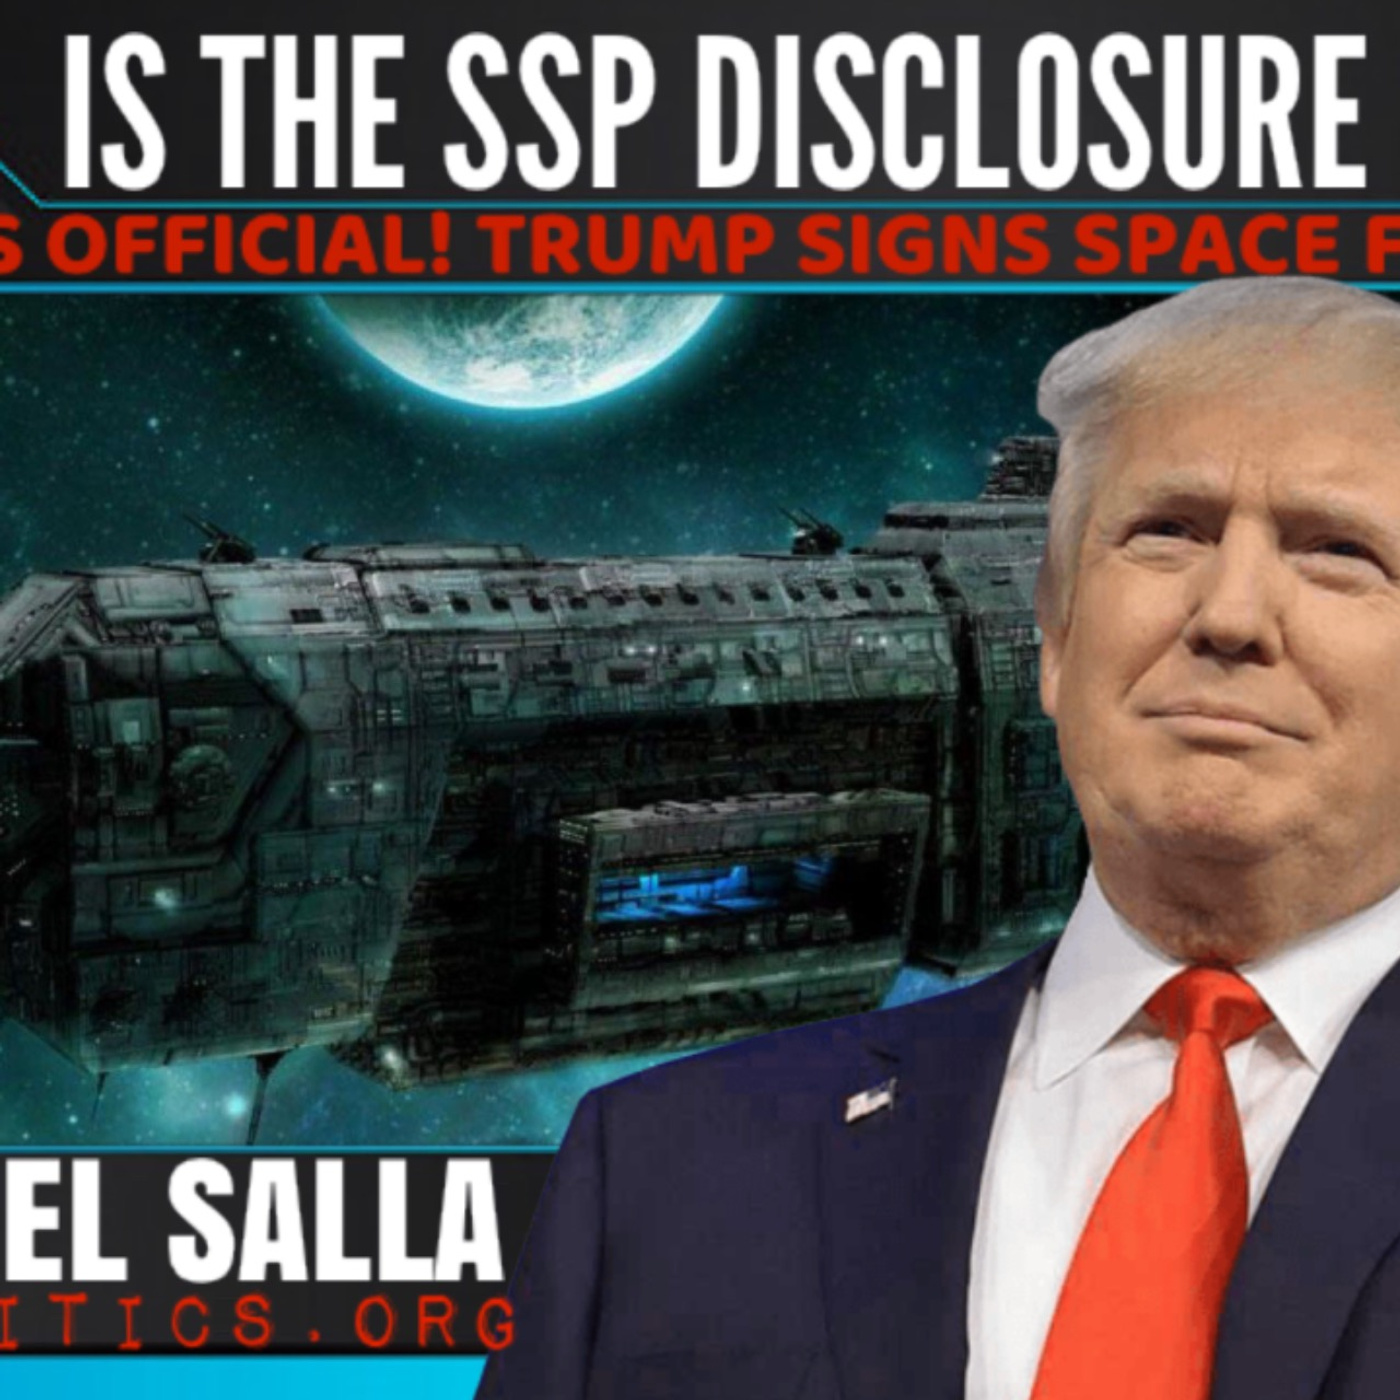 It's Official! Trump Signs Space Force Act: Is The Secret Space Program  Disclosure Imminent?